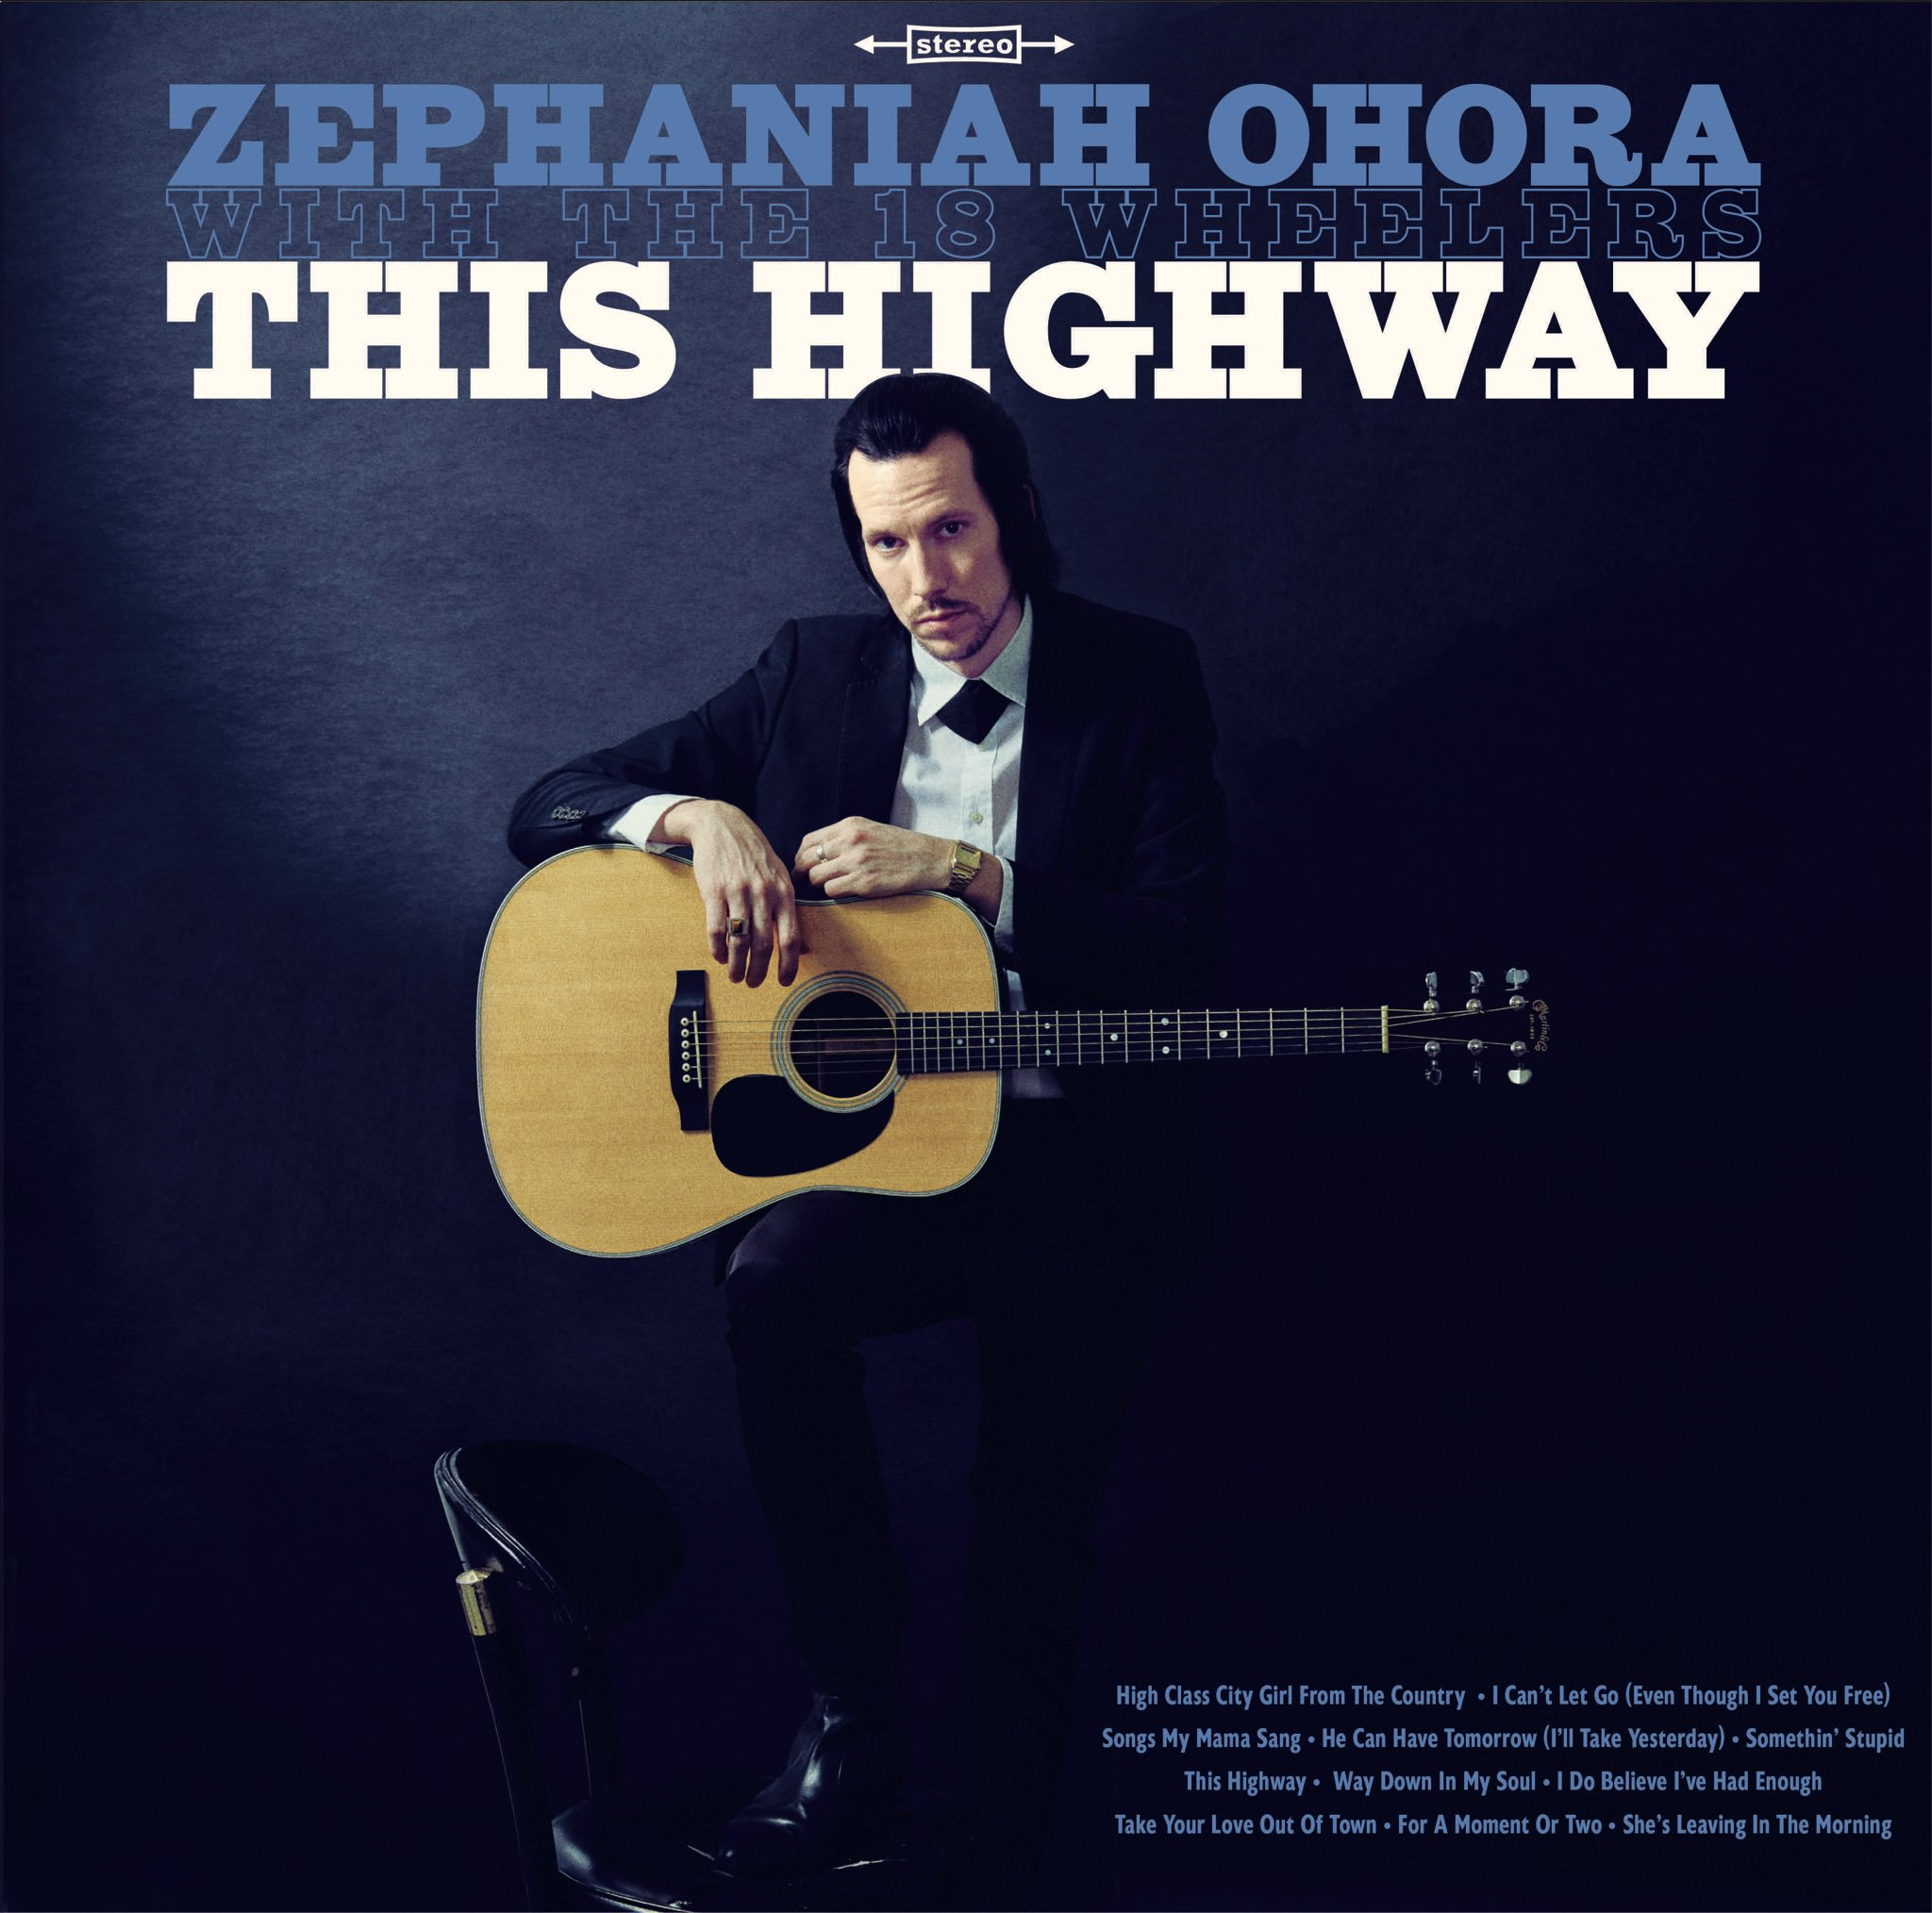 Zephania OHora - This Highway